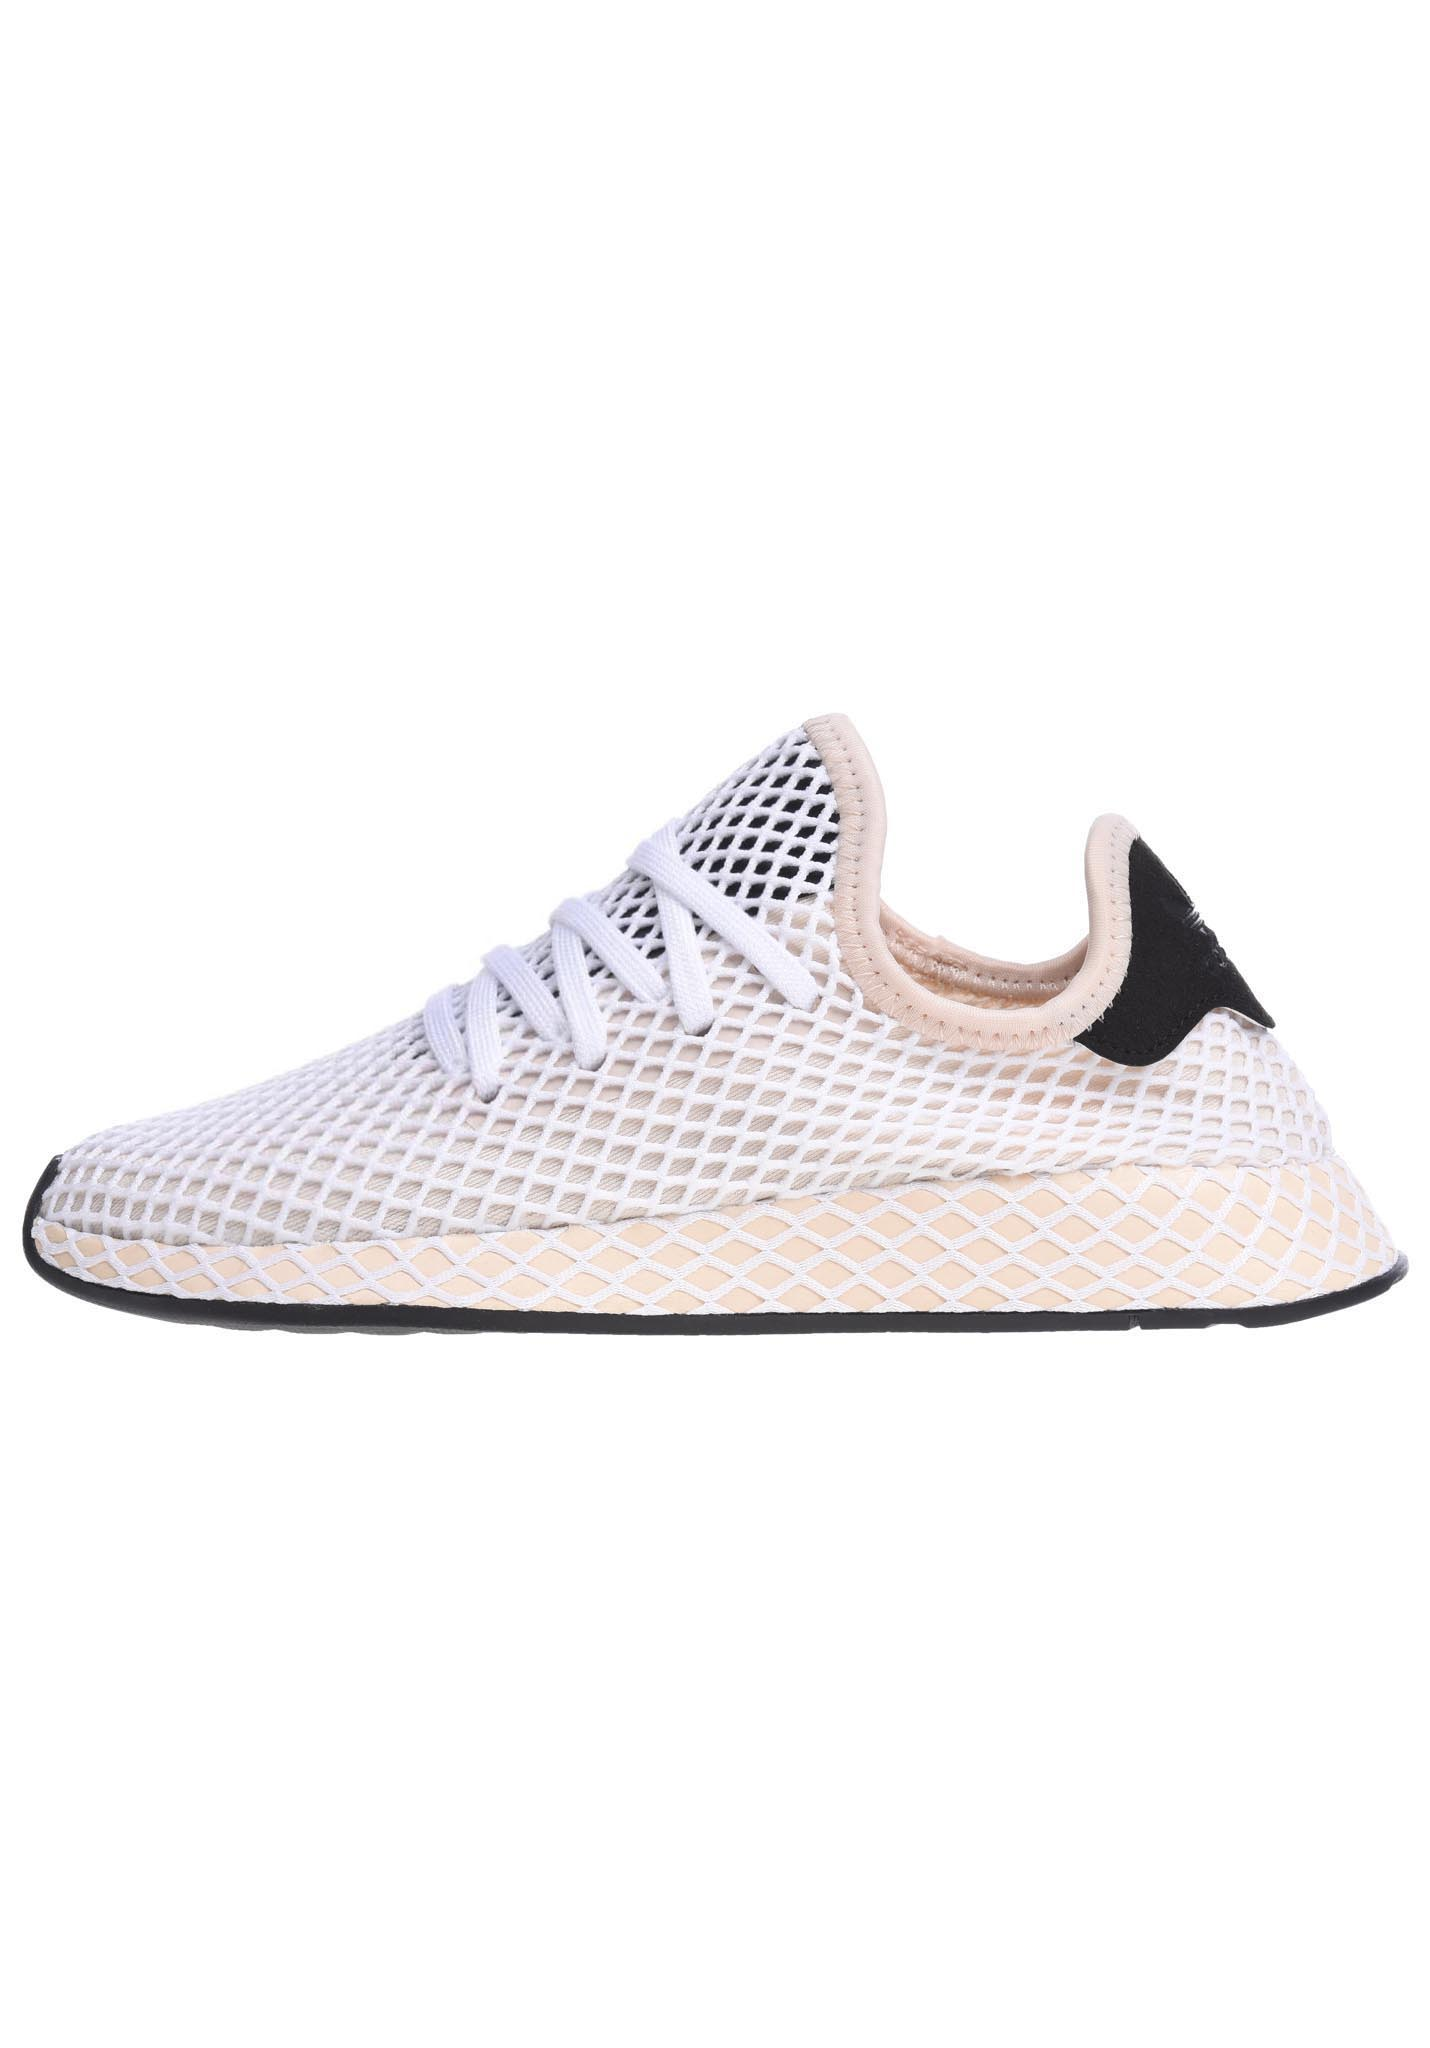 new concept cda25 728a5 ADIDAS ORIGINALS Deerupt Runner - Sneakers for Women - White - Planet Sports